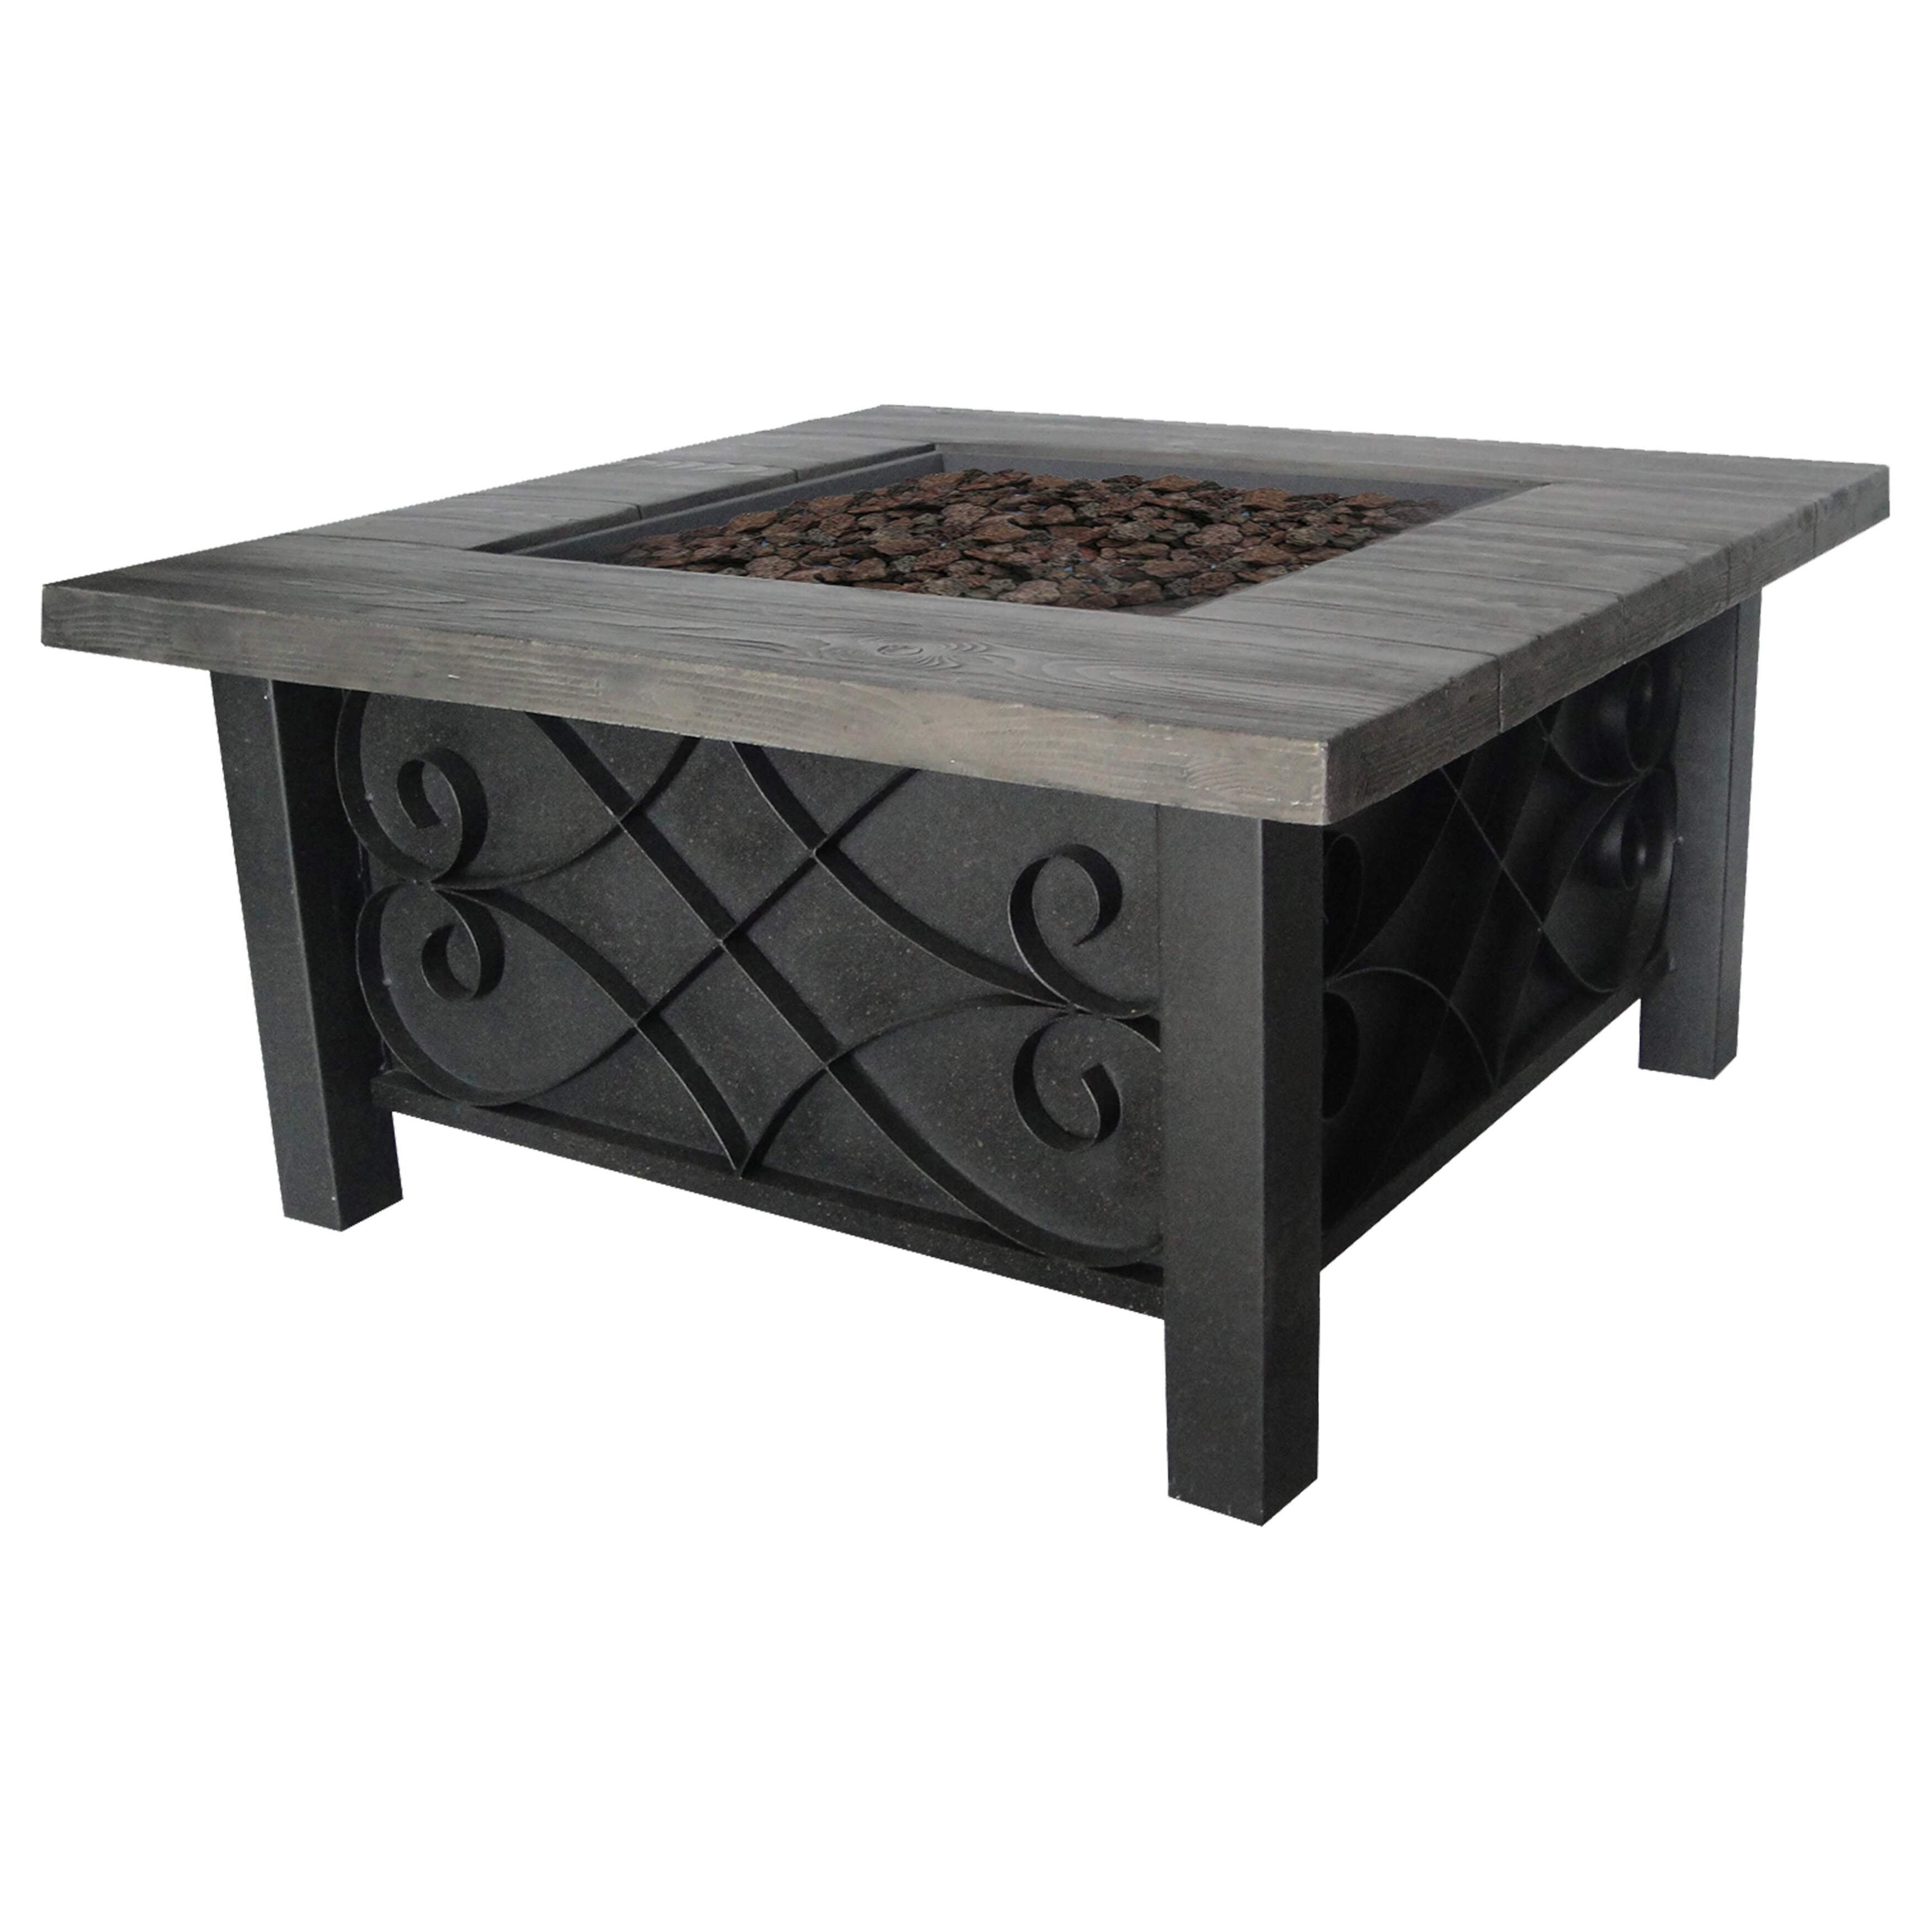 Bond Marbella Steel Gas Outdoor Table Top Fireplace Reviews